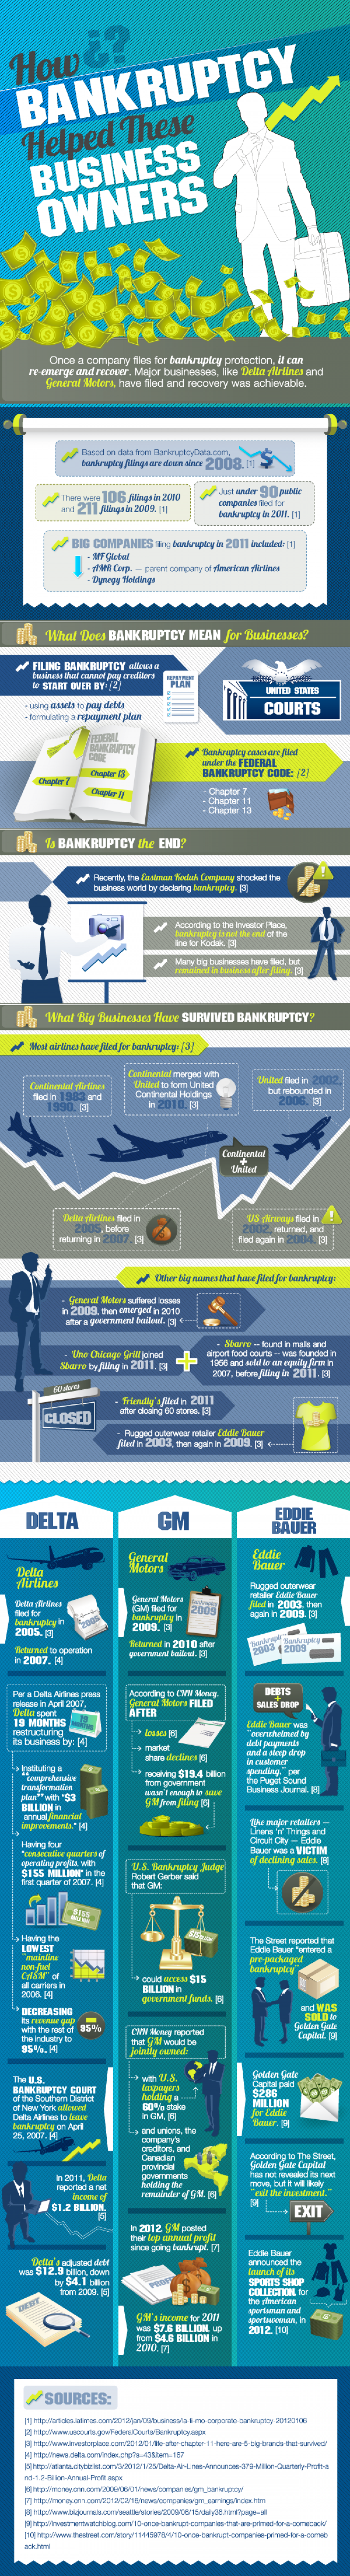 How Bankruptcy Helped These Business Owners Infographic